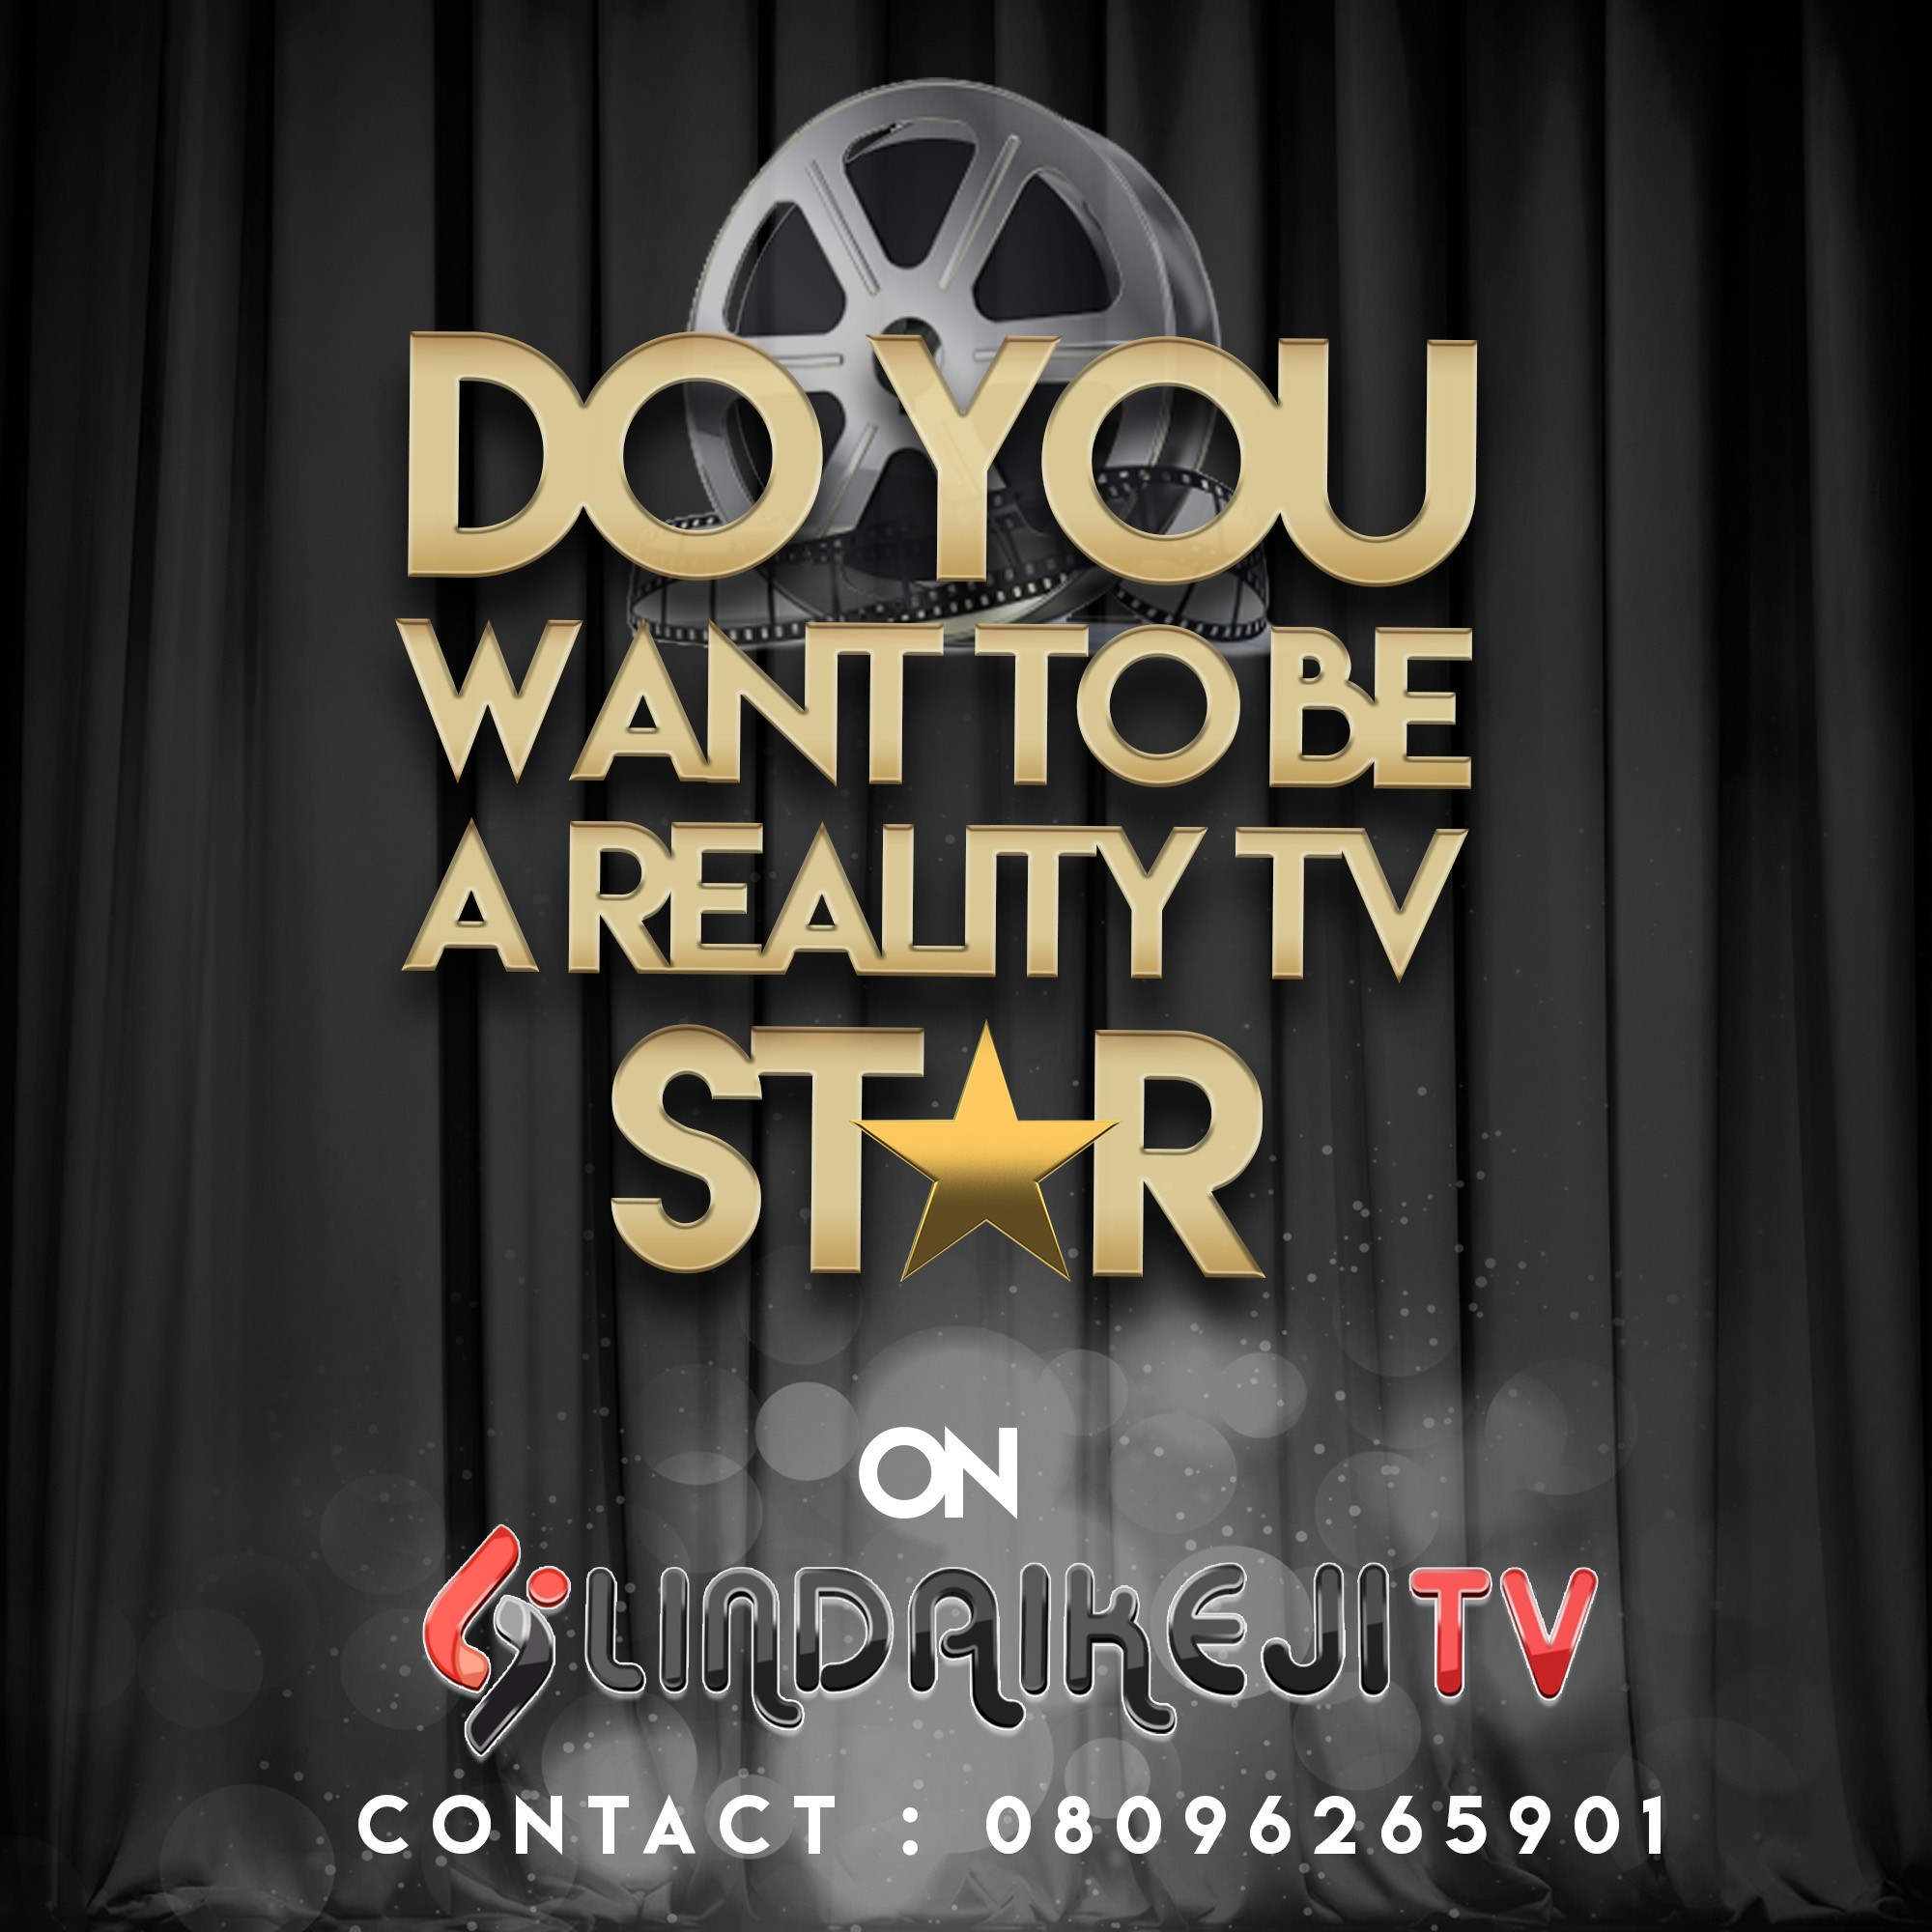 Do you want to be a reality star on LindaIkejiTV?